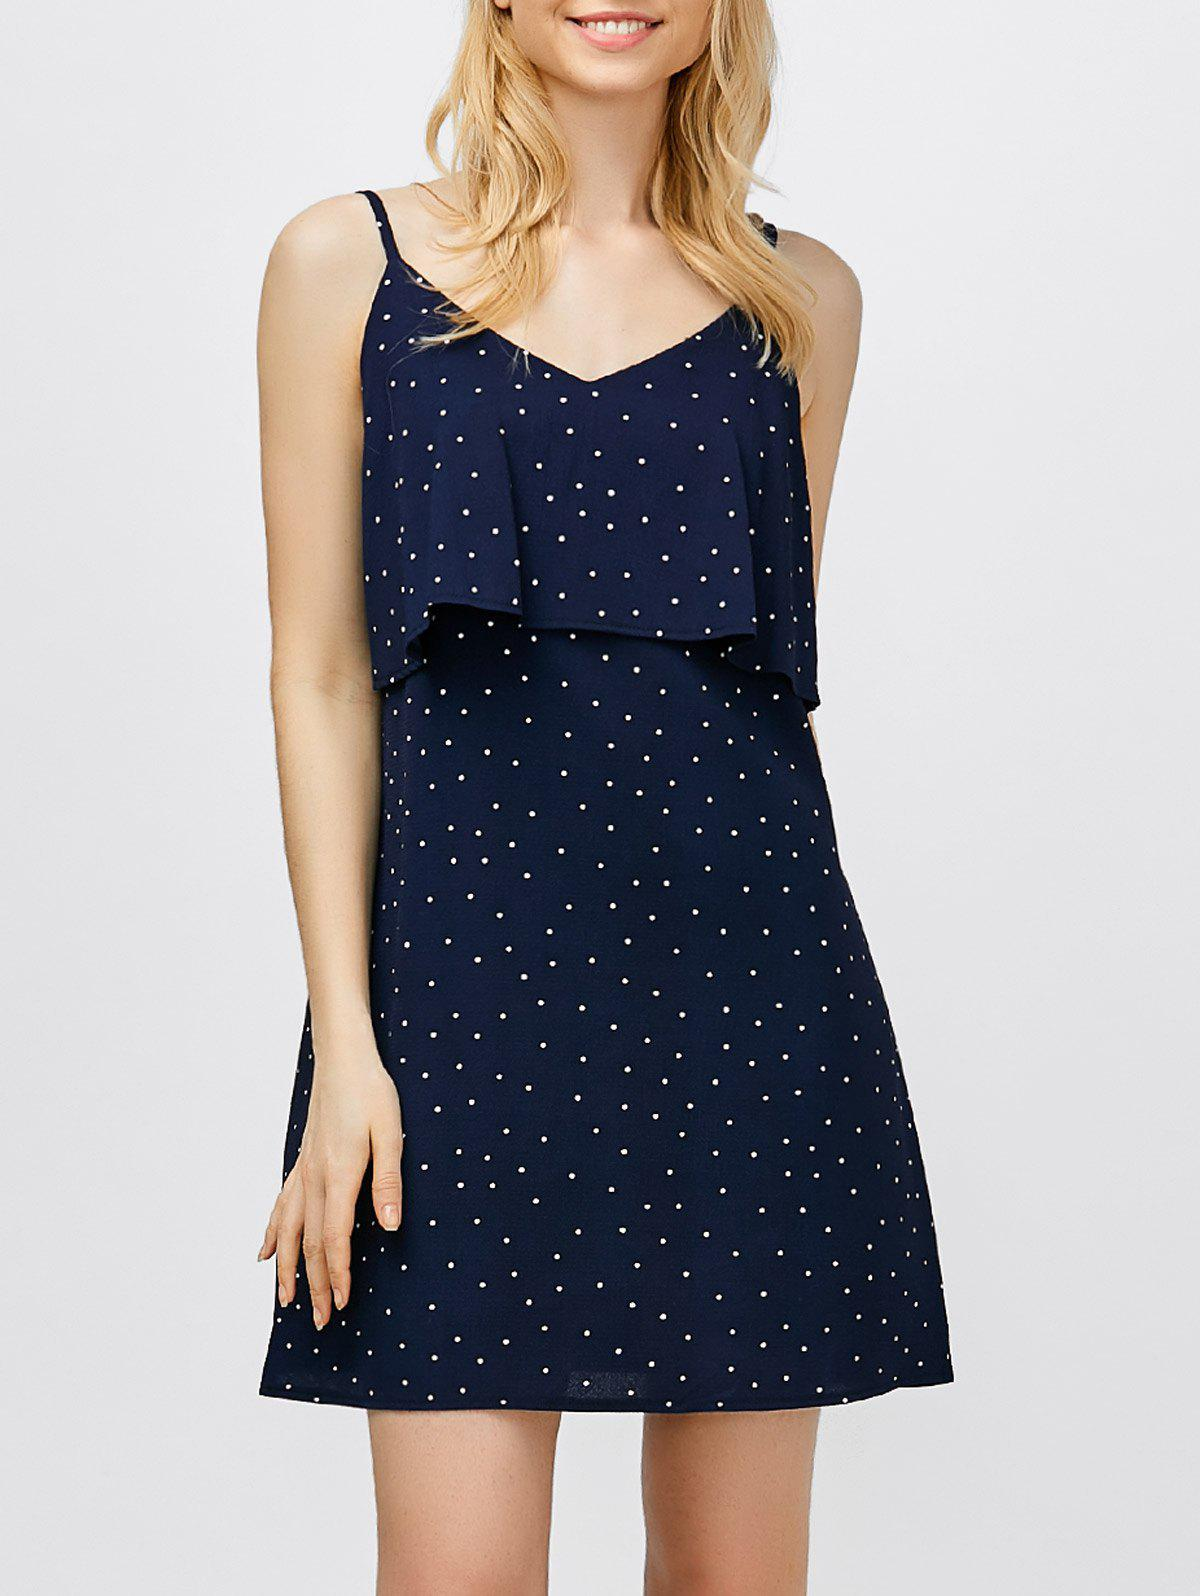 Chic Ruffle Polka Dot Mini Slip Dress